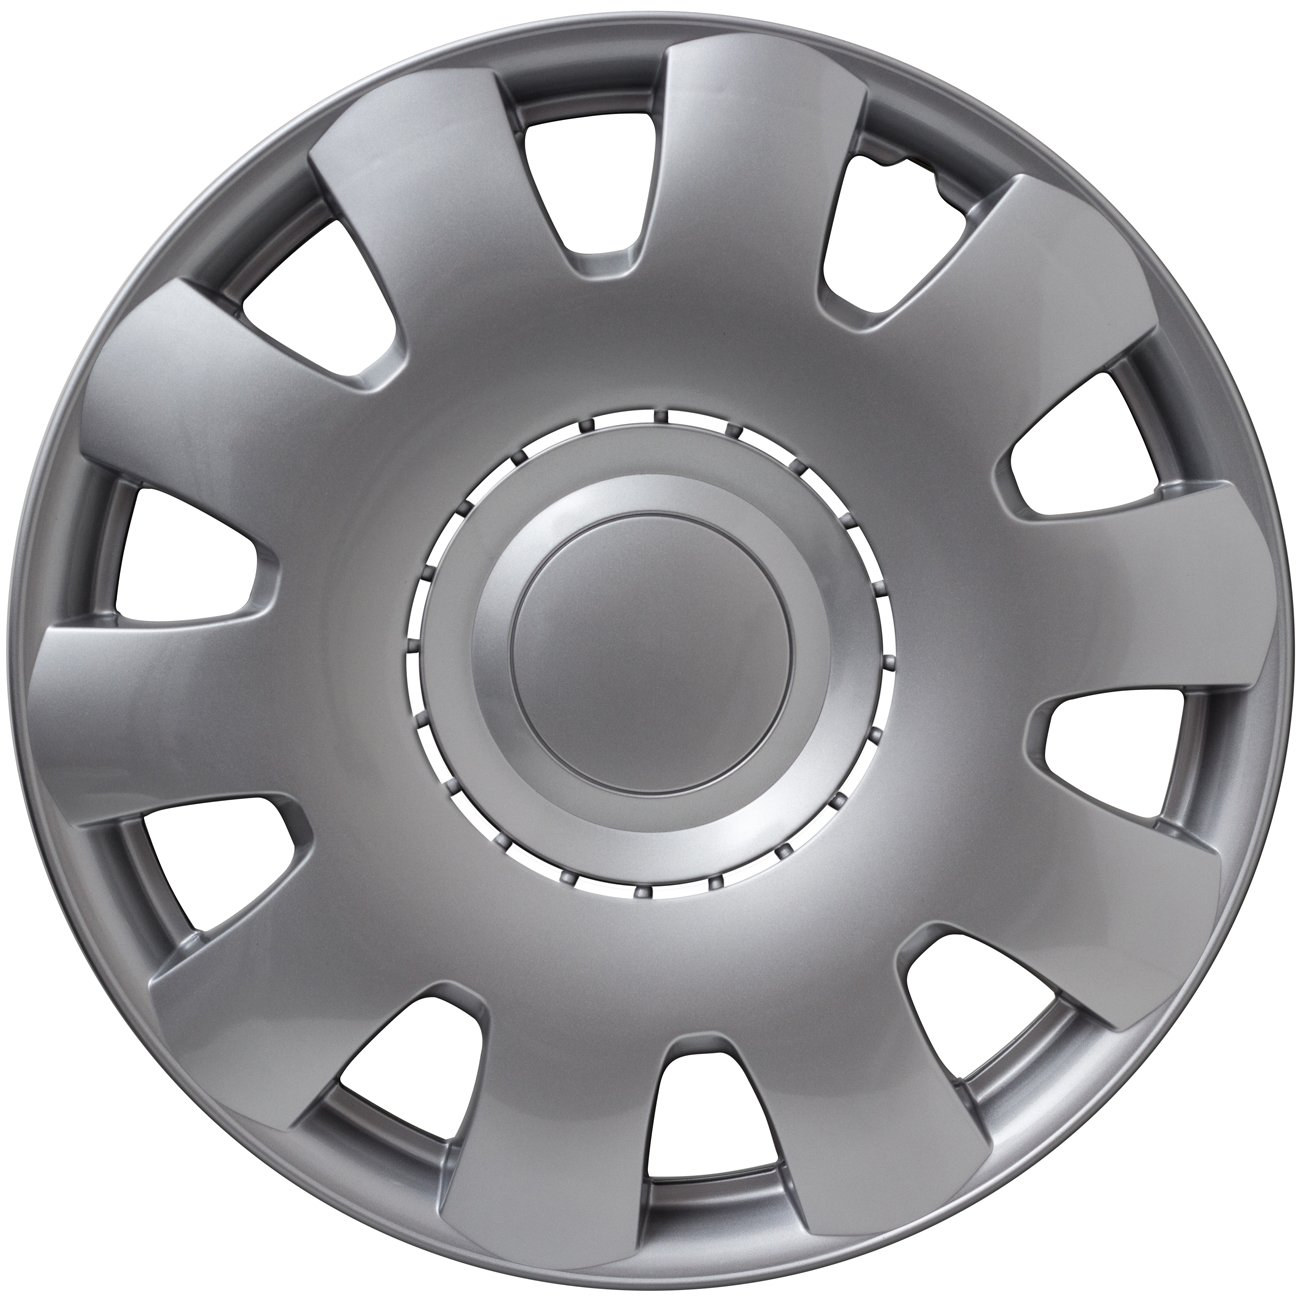 15 inch Hubcaps Best for 2004-2006 Toyota Camry - (Set of 4) Wheel Covers 15in Hub Caps Silver Rim Cover - Car Accessories for 15 inch Wheels - Snap On ...